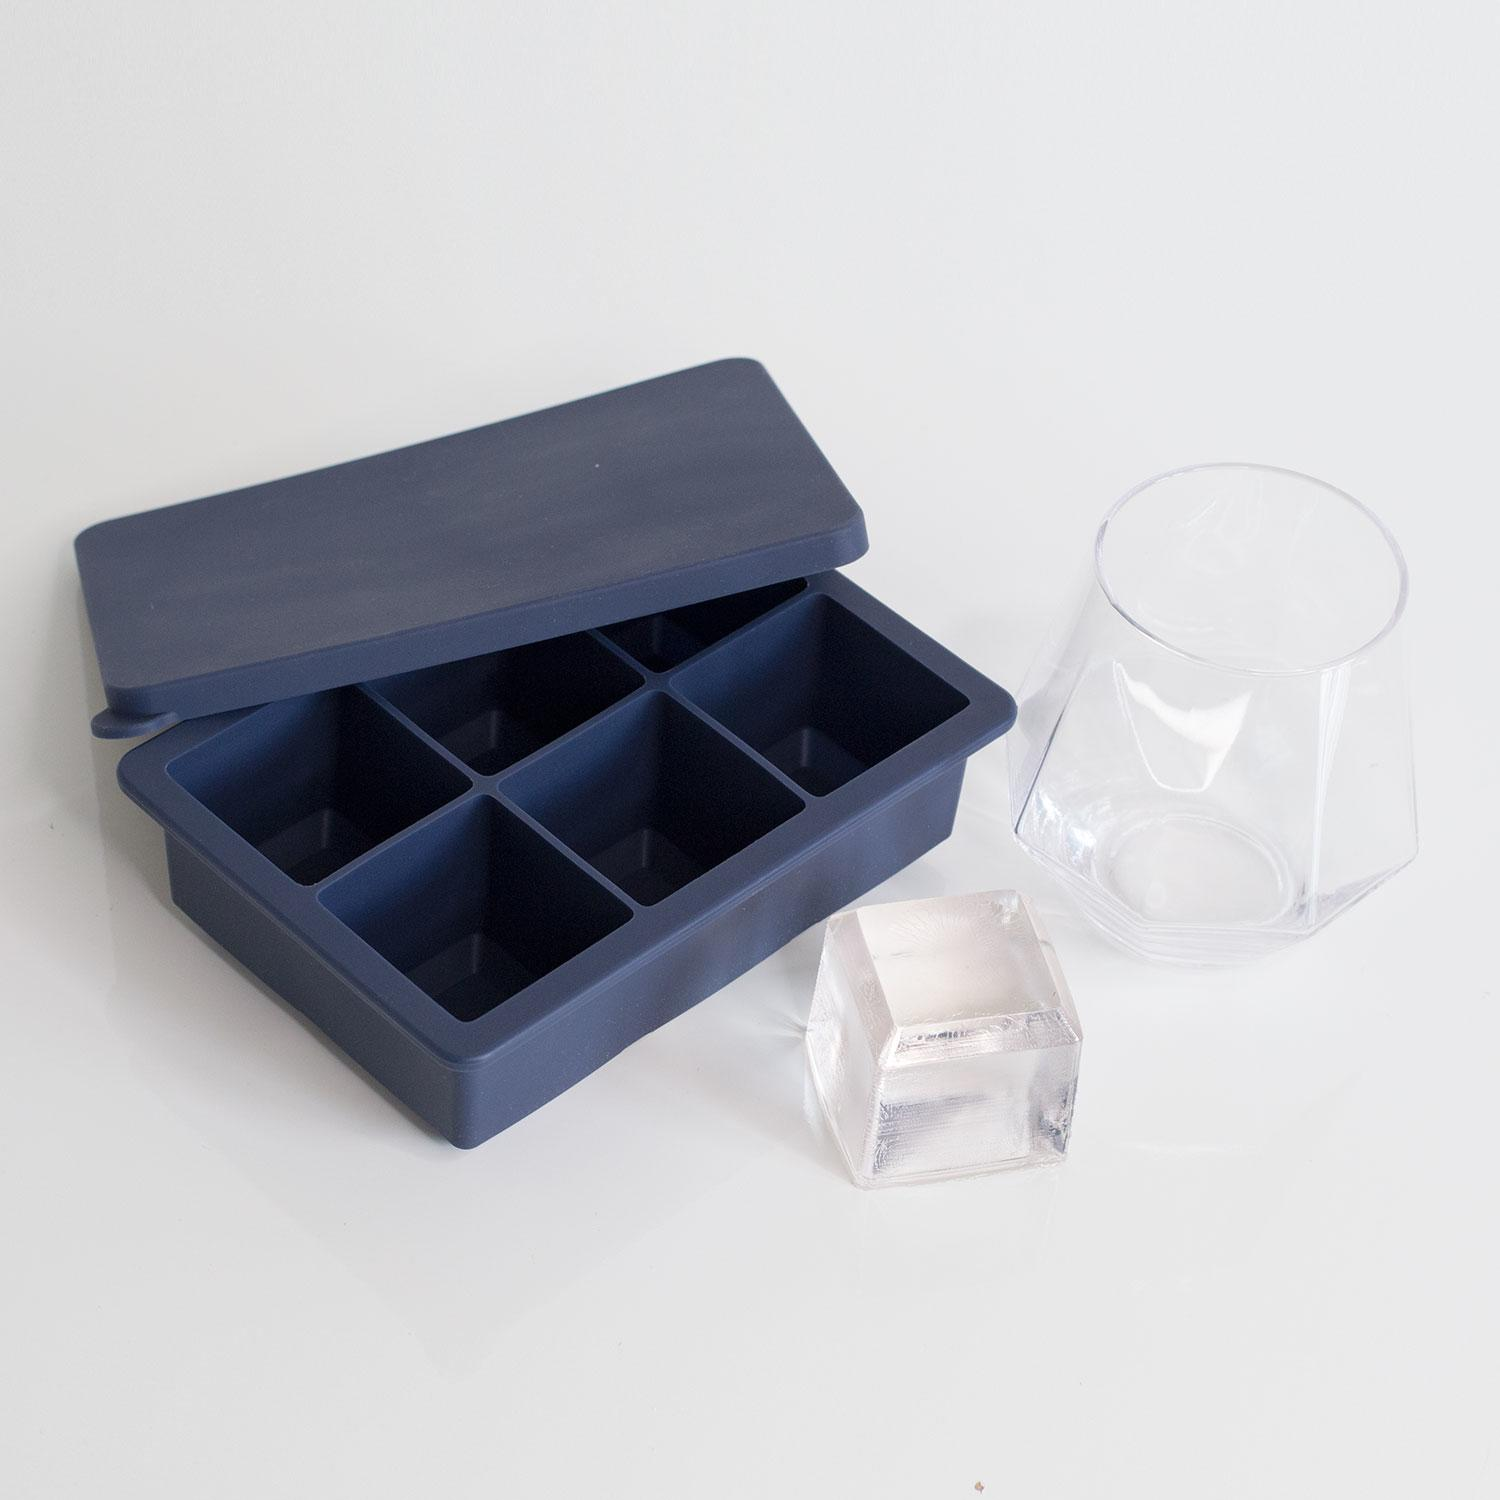 Uberstar Giant Ice Cube Tray - Only £8.99